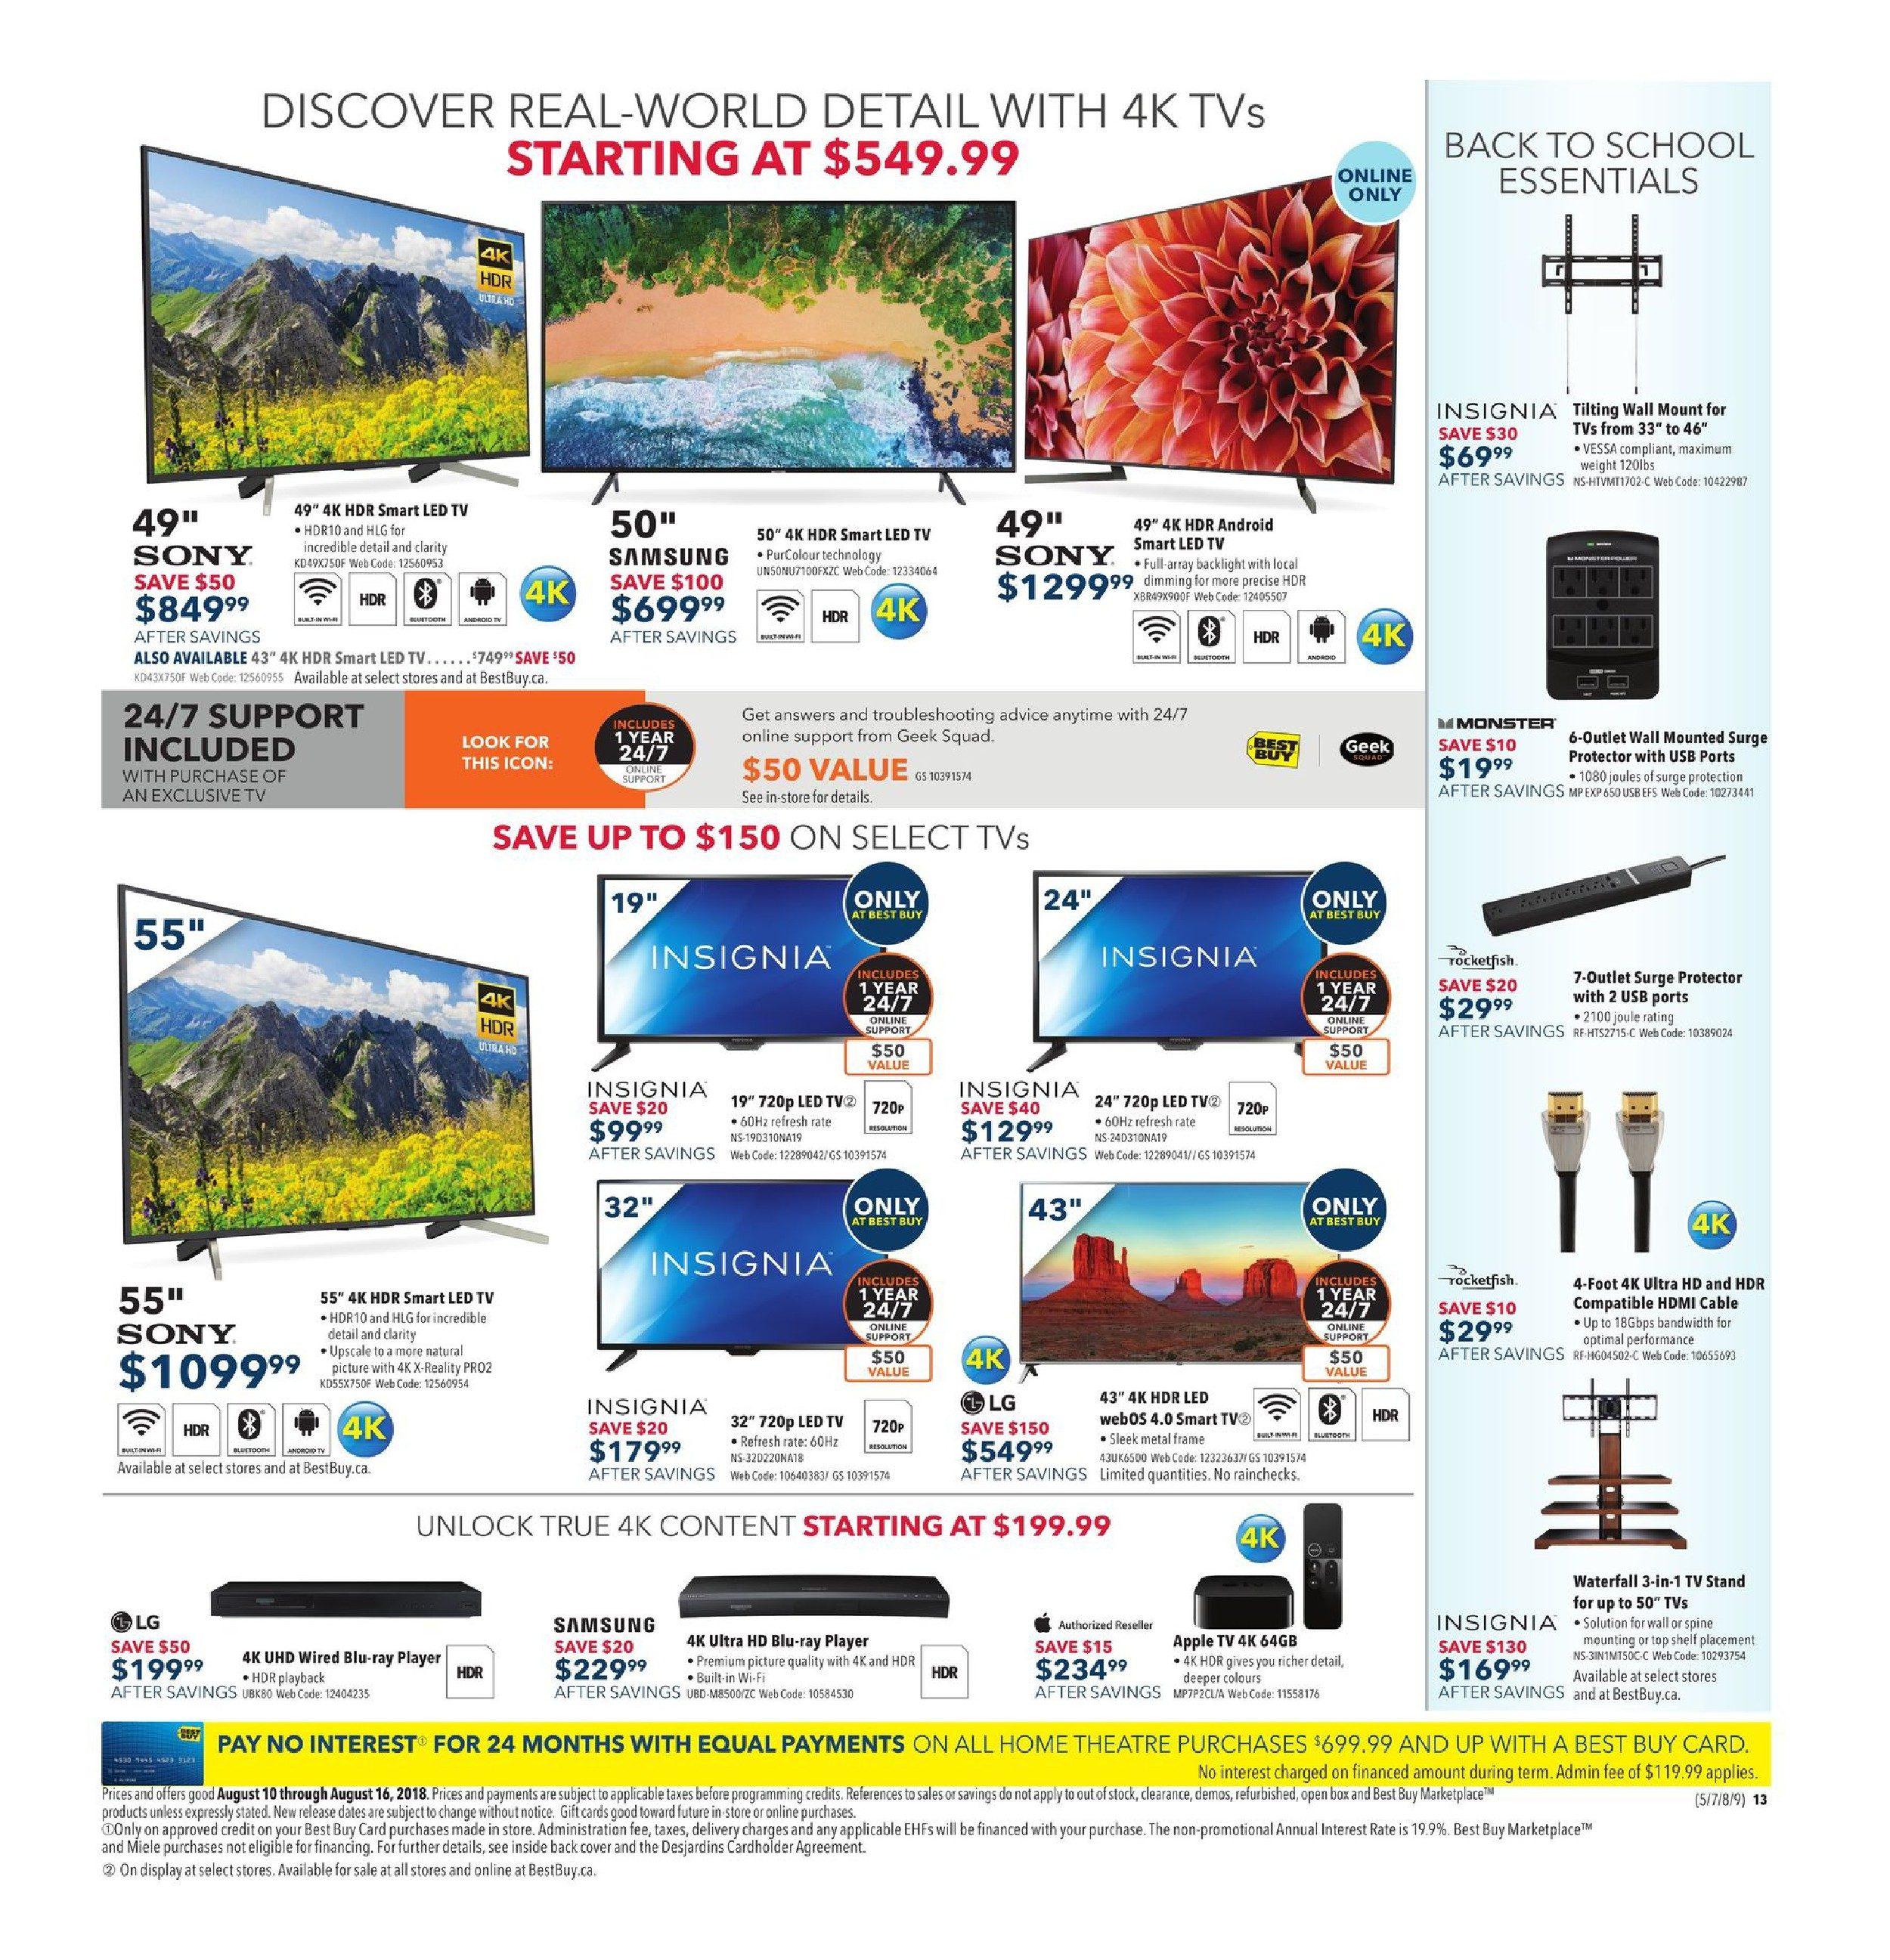 Best Buy Weekly Flyer Power Your School Year With Apple Electrical Service To Detached Garage Page 3 Teamtalk Aug 10 16